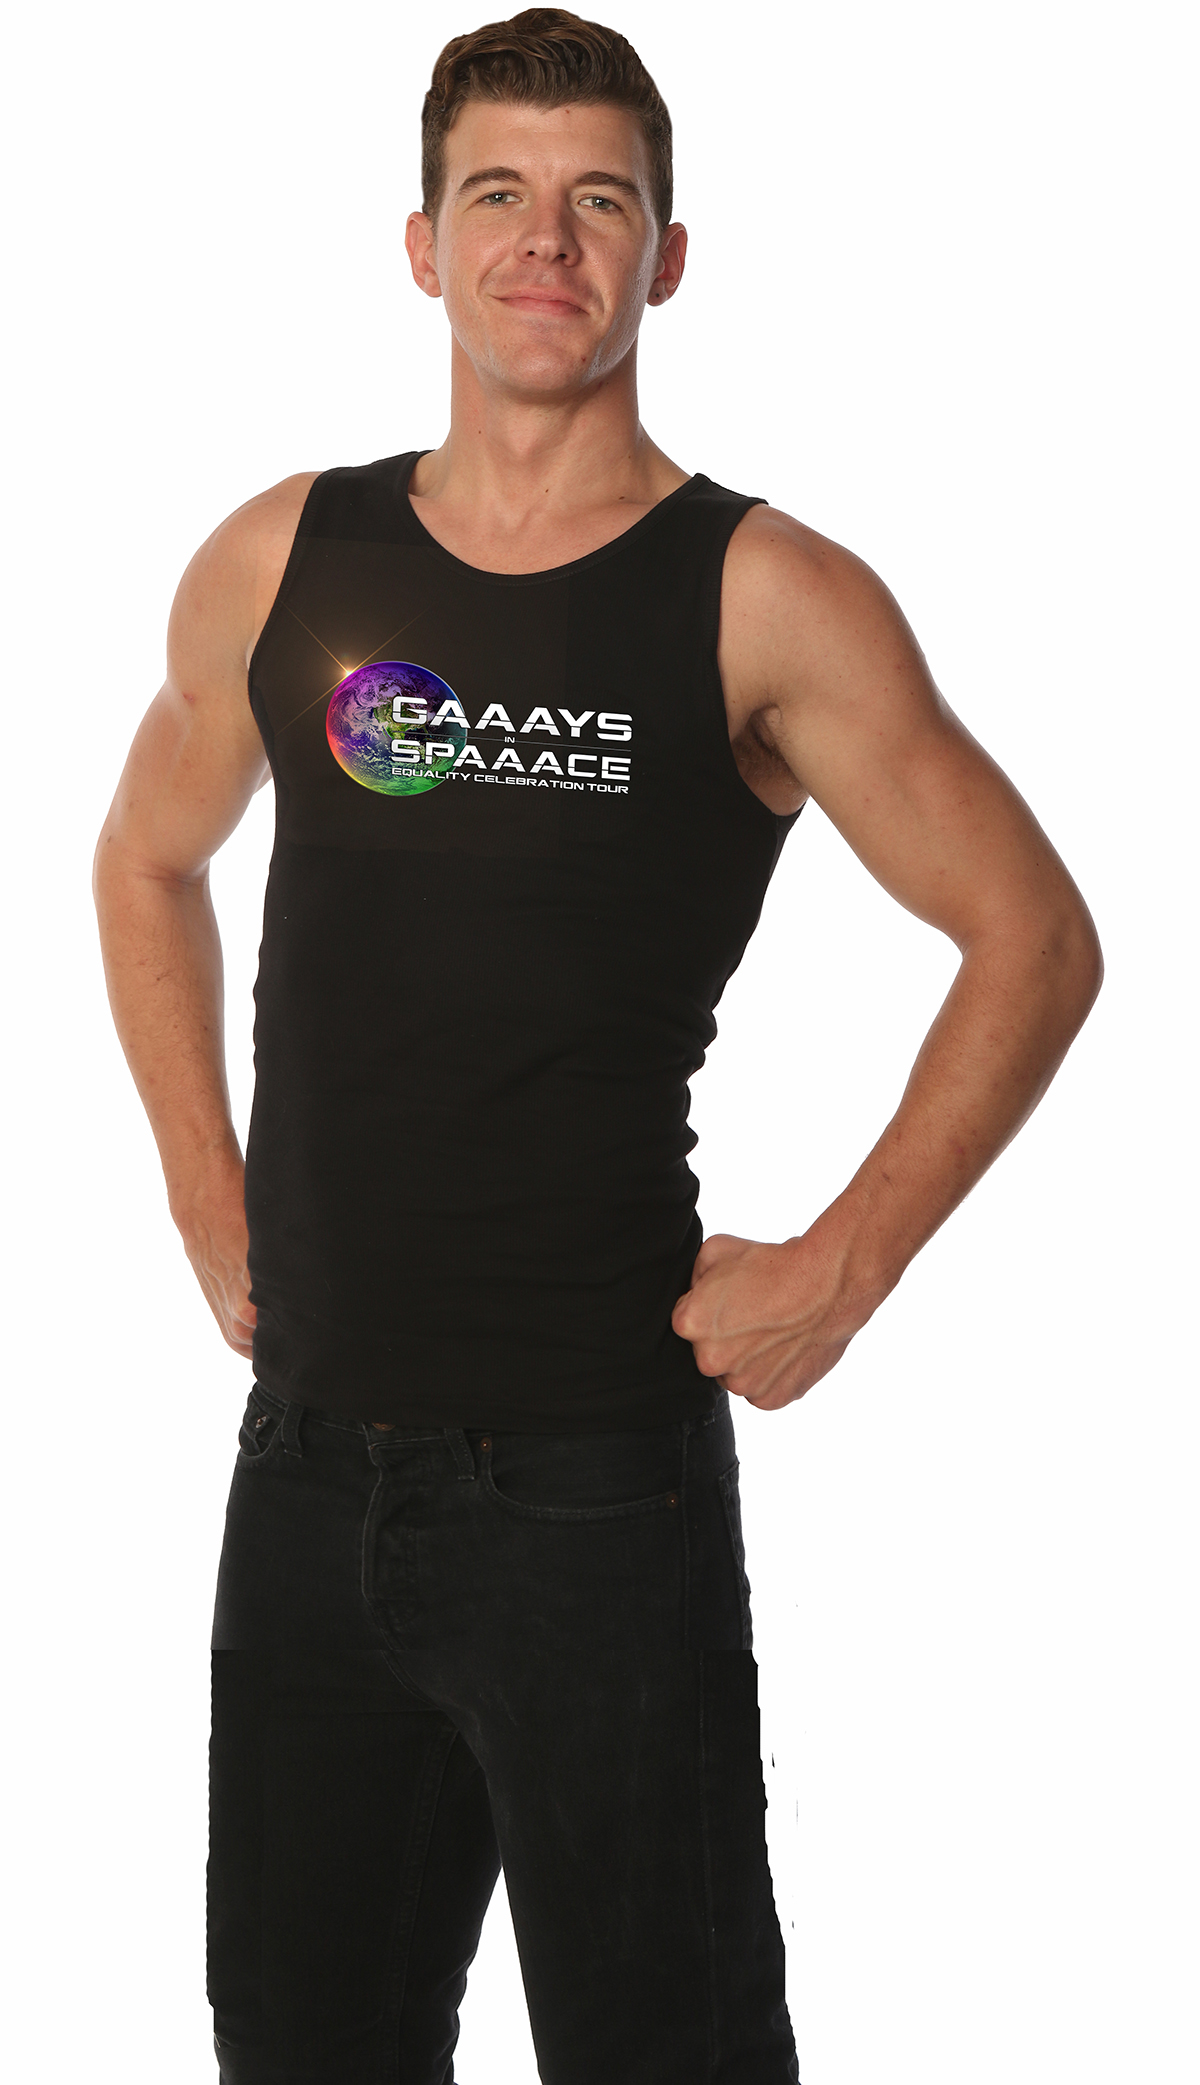 9-4-17-GAY-PLANET-TANK-TOP-JJ-HANDS-ON-HIPS-SMILE--WEB-SIZE.jpg